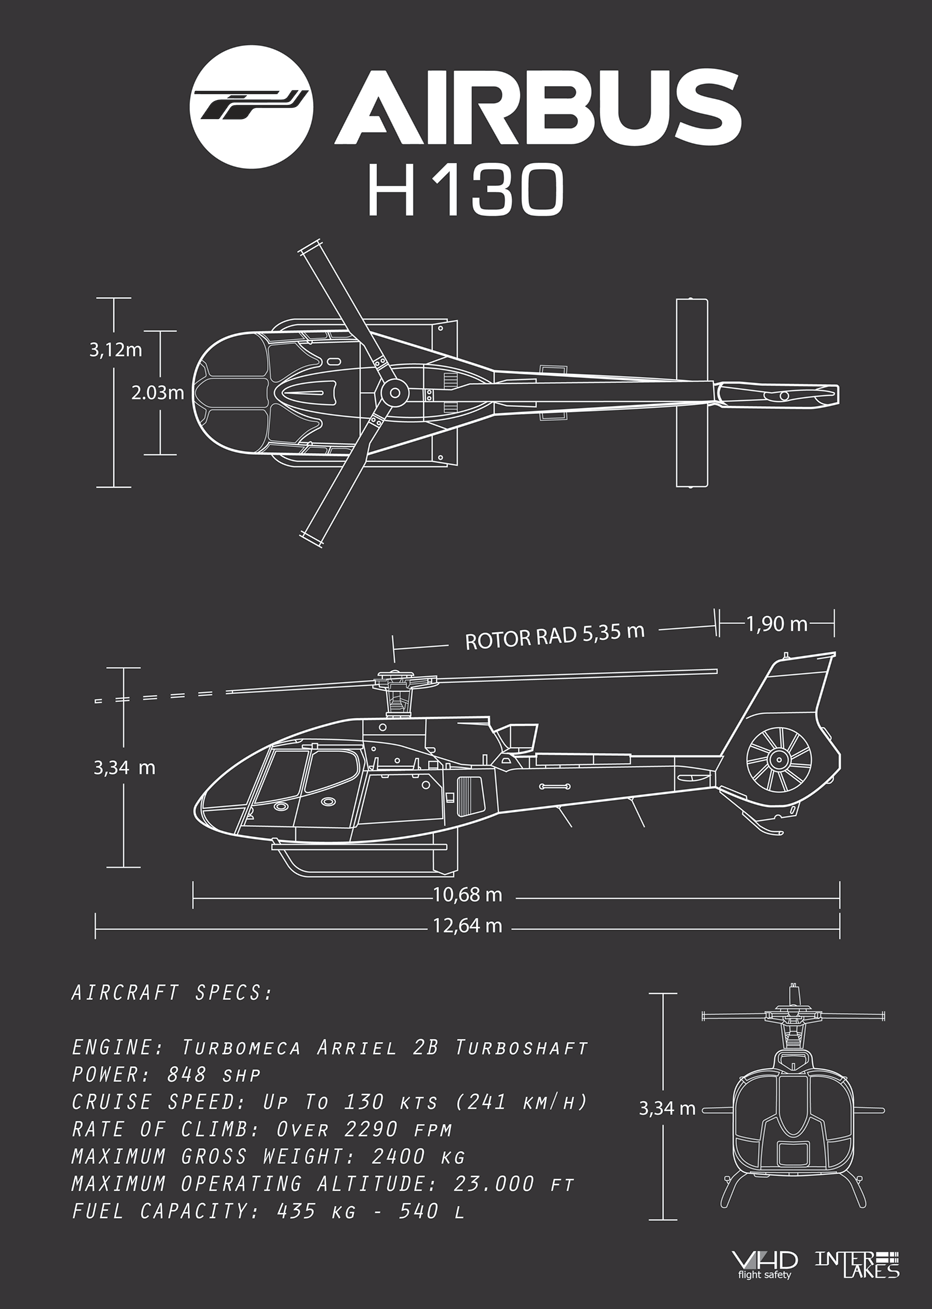 EUROCOPTER AIRBUS H130